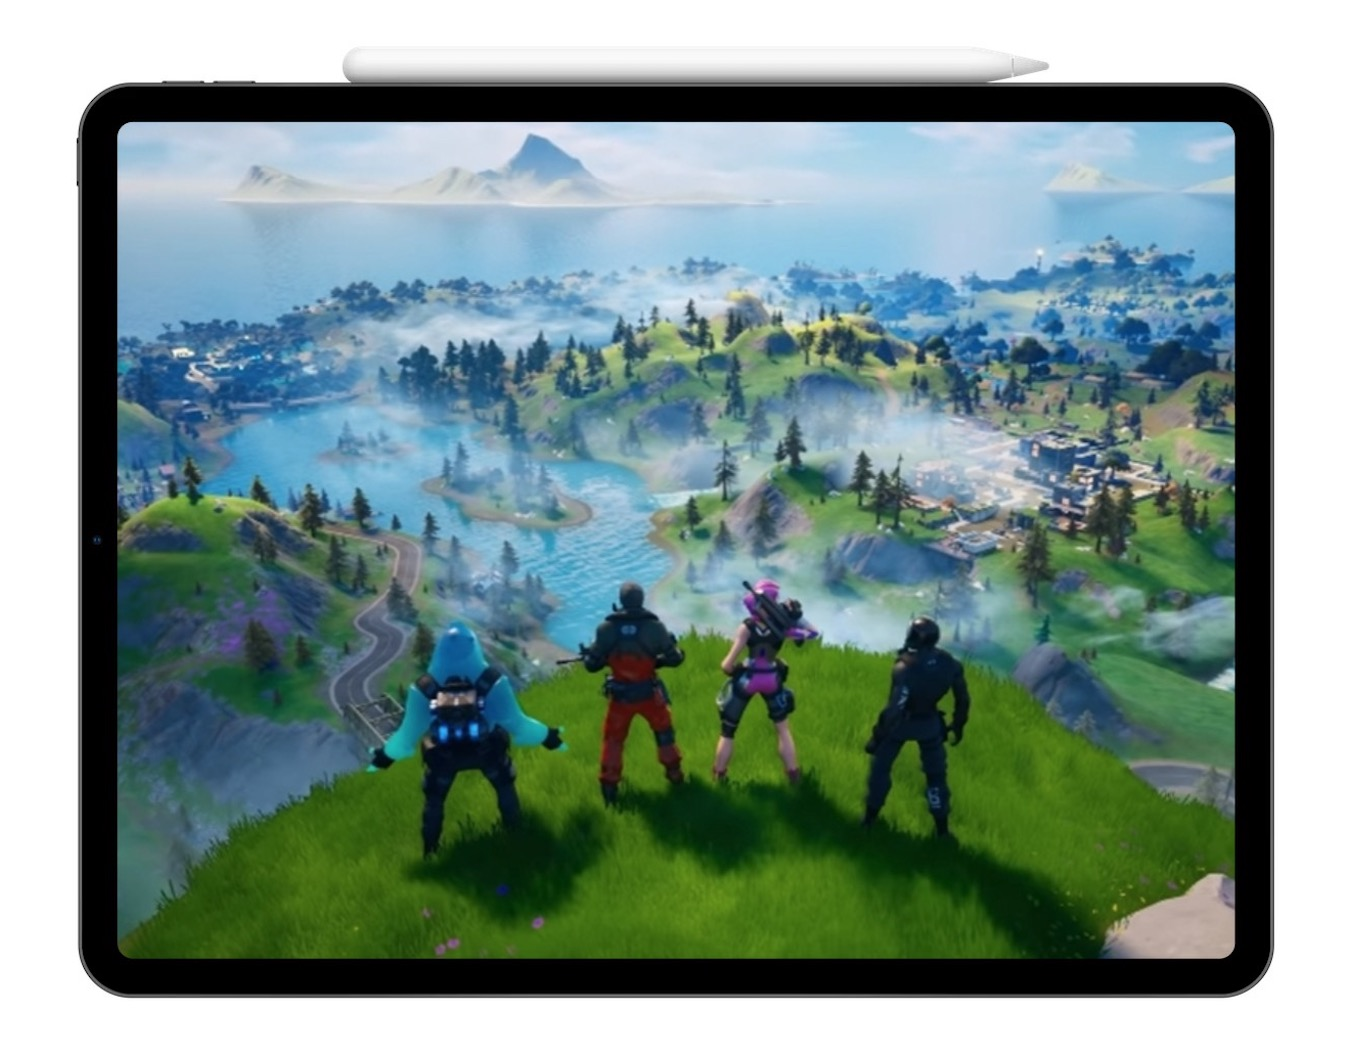 Latest Fortnite Update for iOS Brings 120fps Mode to 2018 iPad Pro - MacRumors